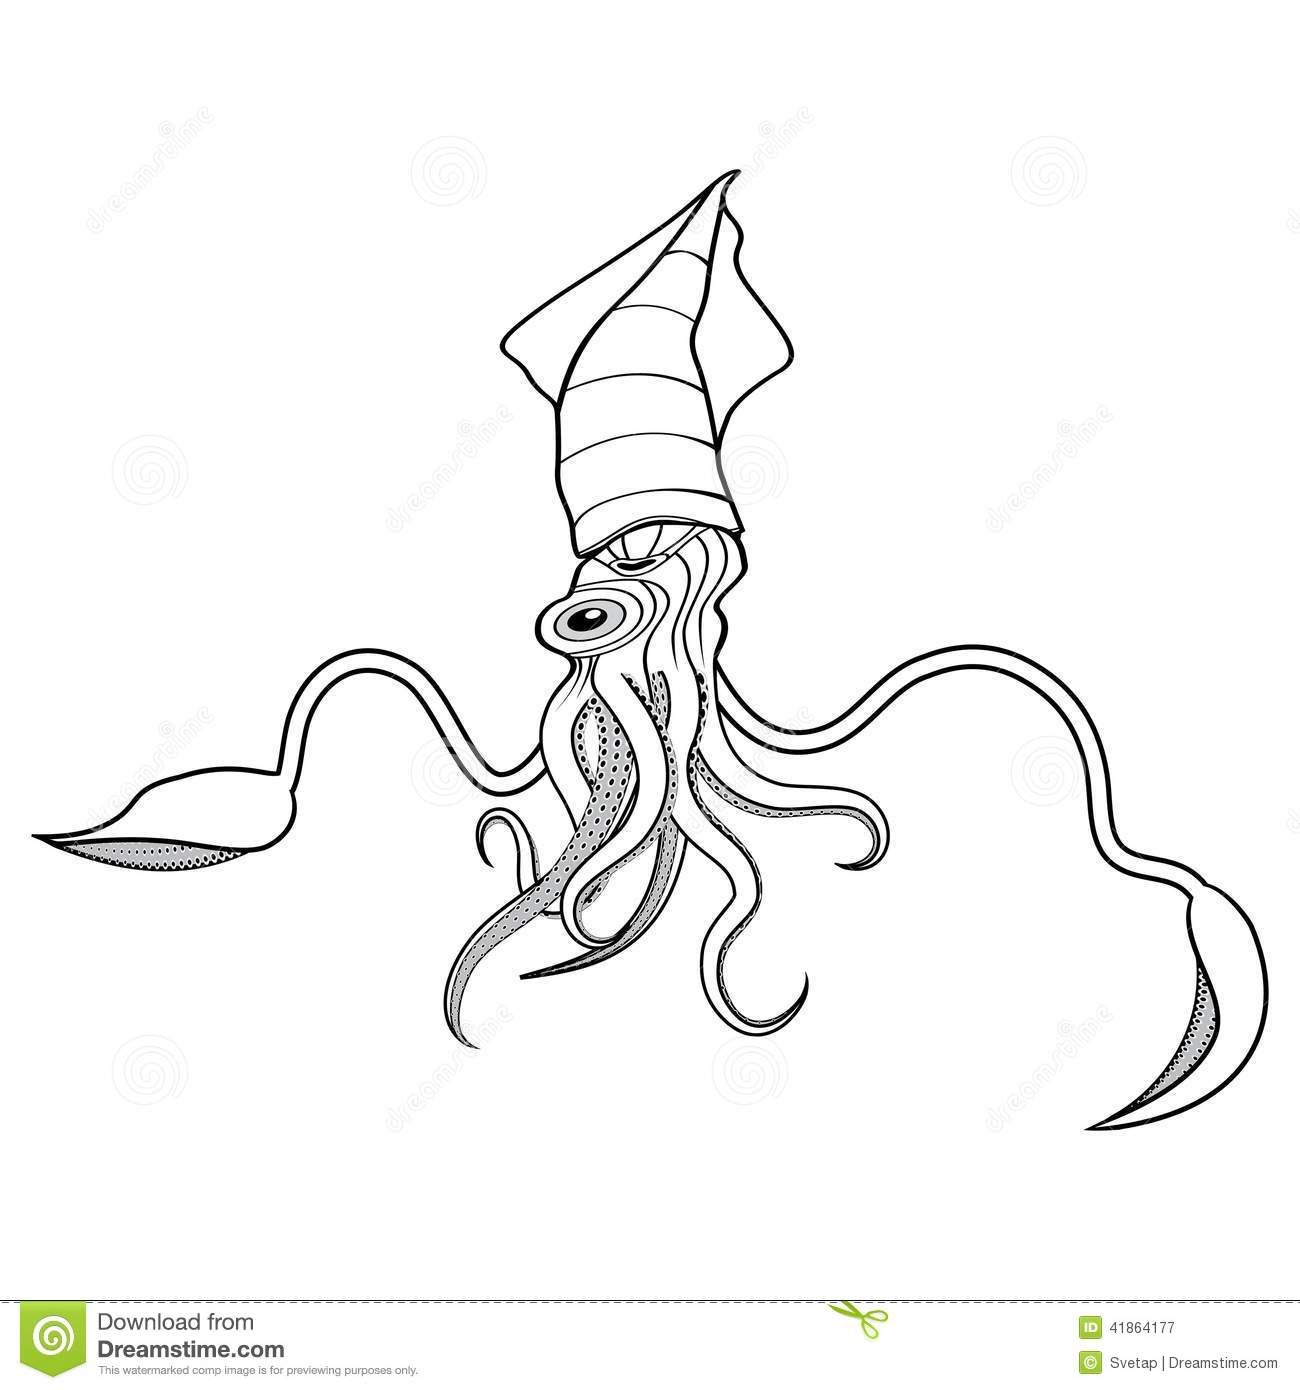 Giant squid illustration stock vector illustration of for Giant squid coloring page